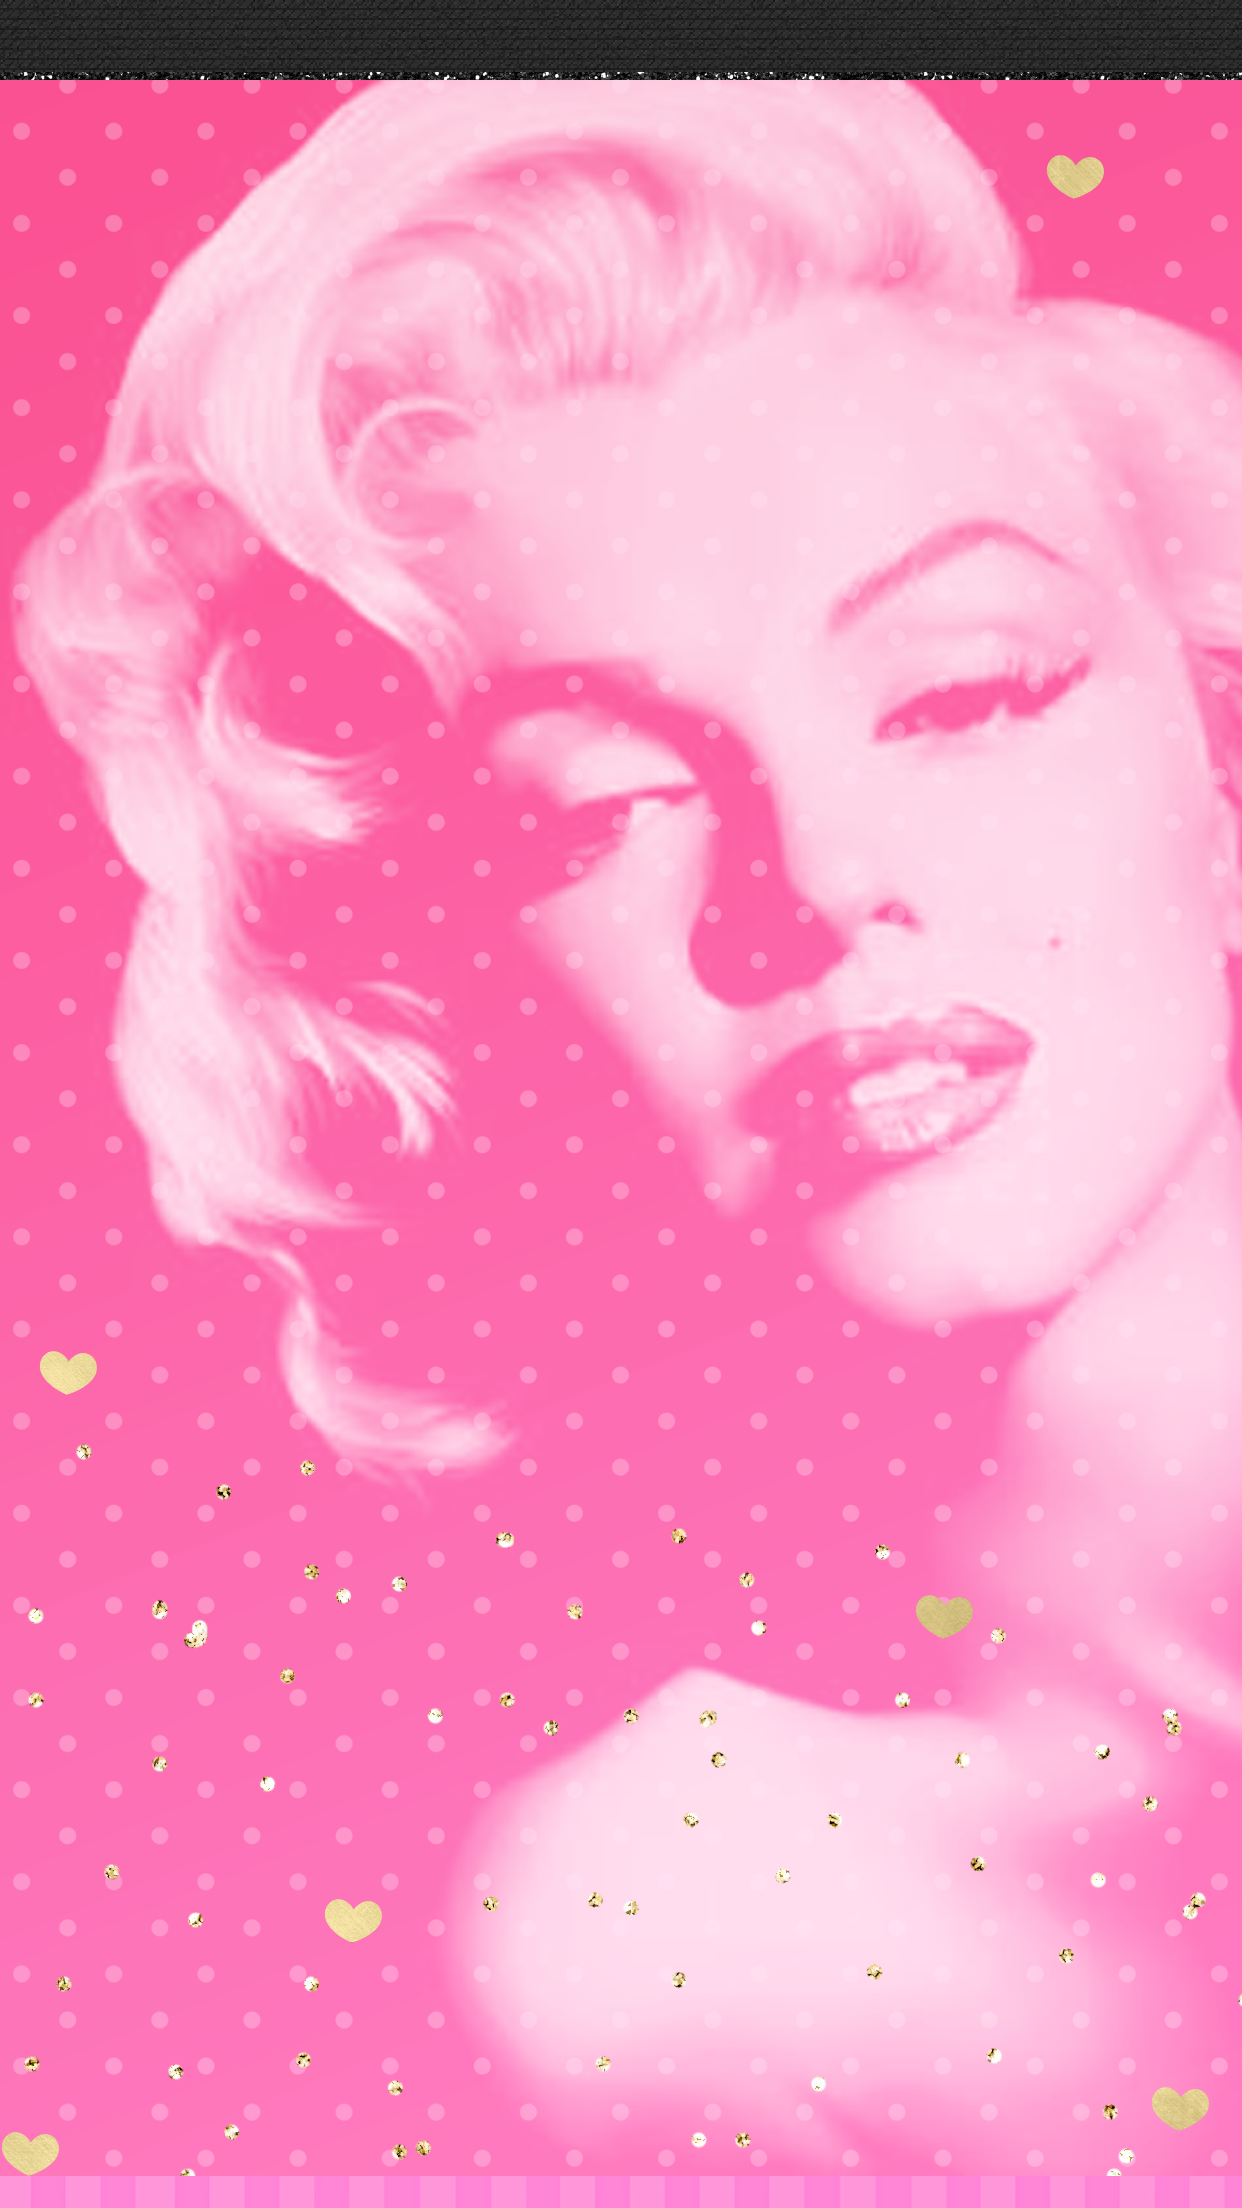 iphone wallpaper #marilynmonroe | iphone wallpapers | pinterest